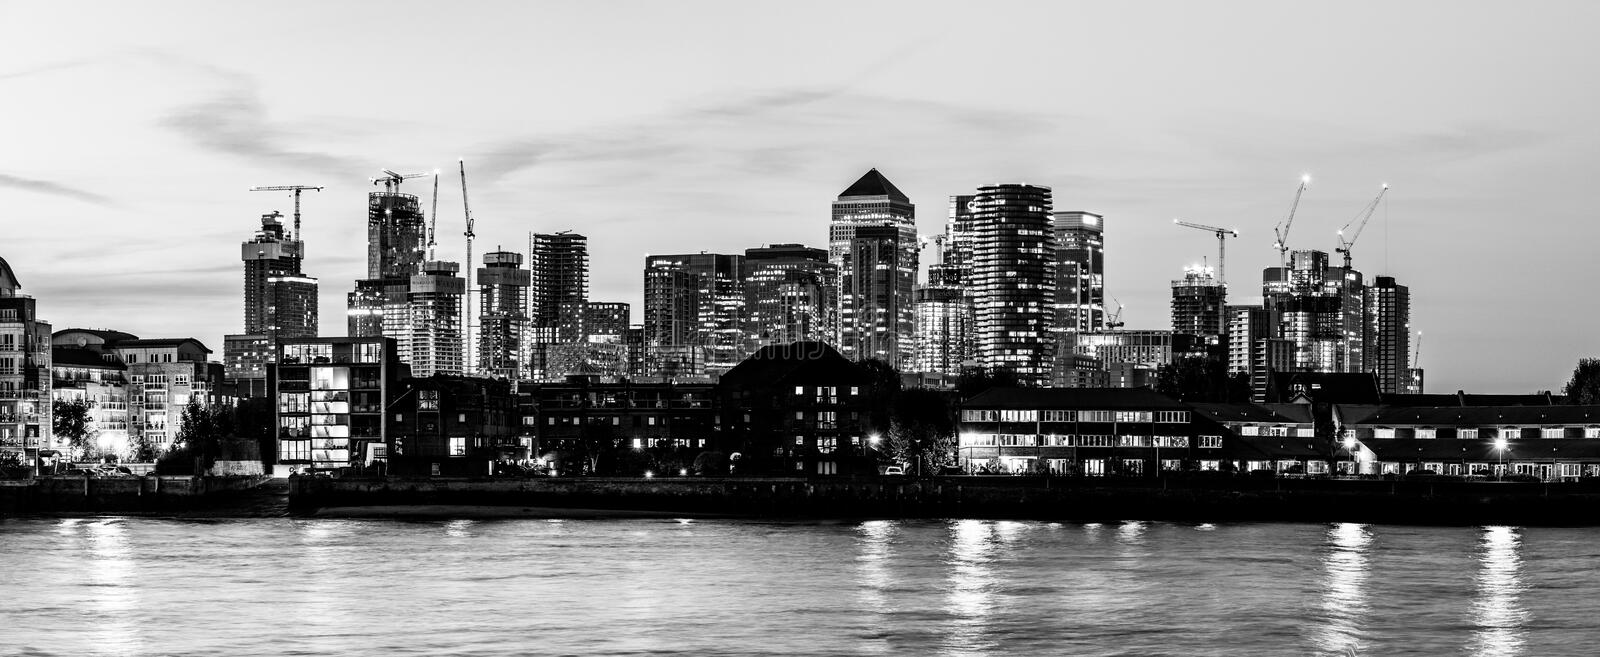 Urban night view of the downtown City of London, river Thames, modern office buildings  in the square mile financial district royalty free stock photography